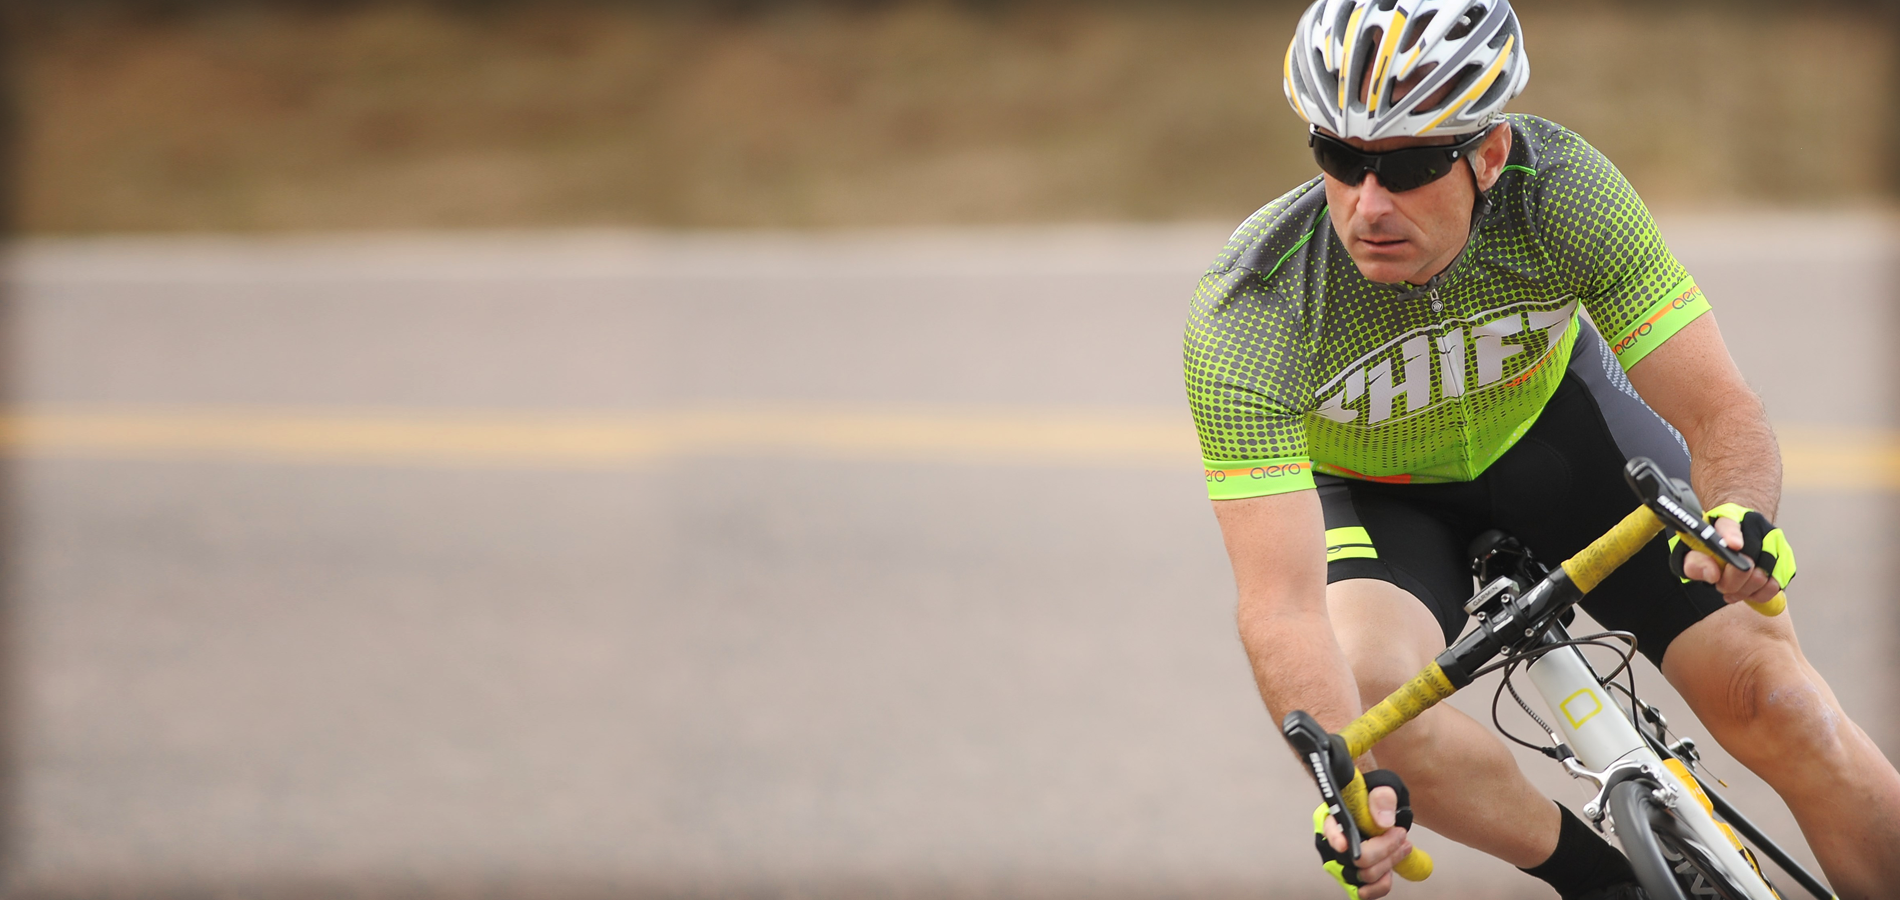 Cycling Apparel for Sping